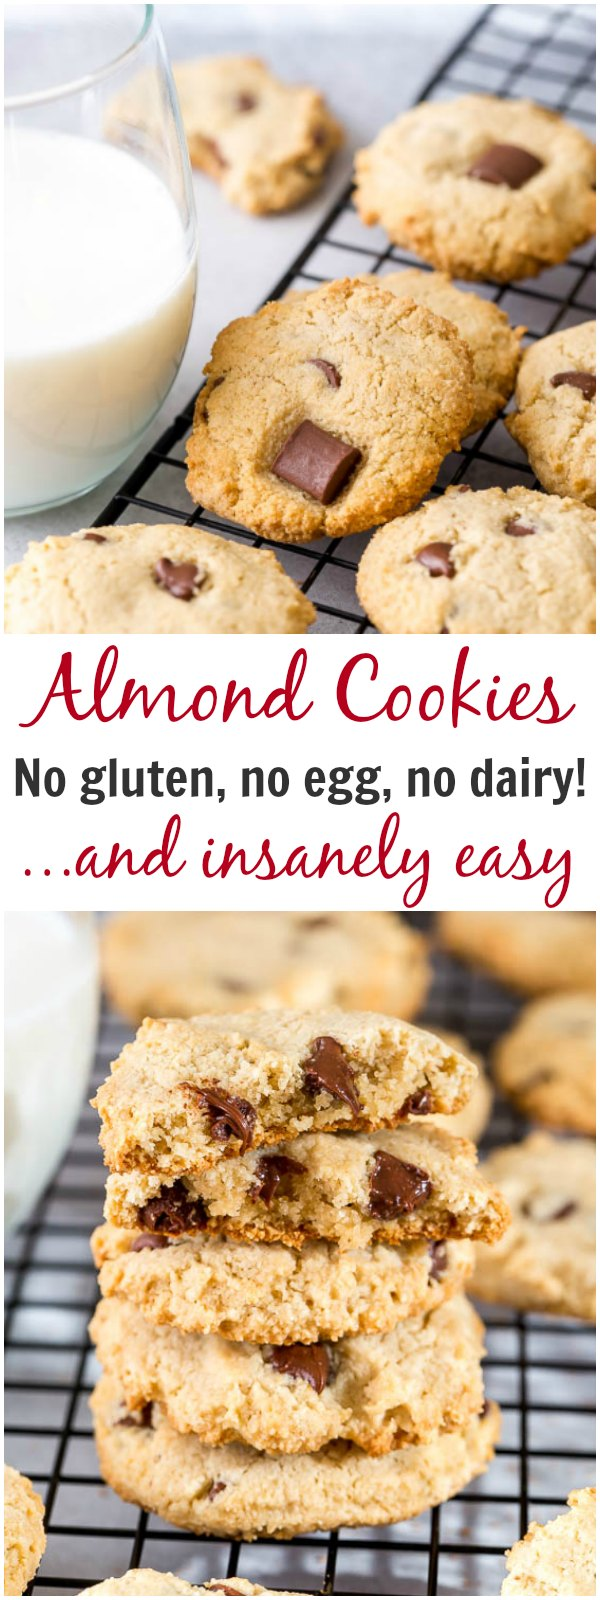 These almond cookies are insanely easy and quick to make! #glutenfreecookies #chocolatechipcookies #paleocookies #almondcookies #glutenfree #dairyfree #eggfree #vegancookies